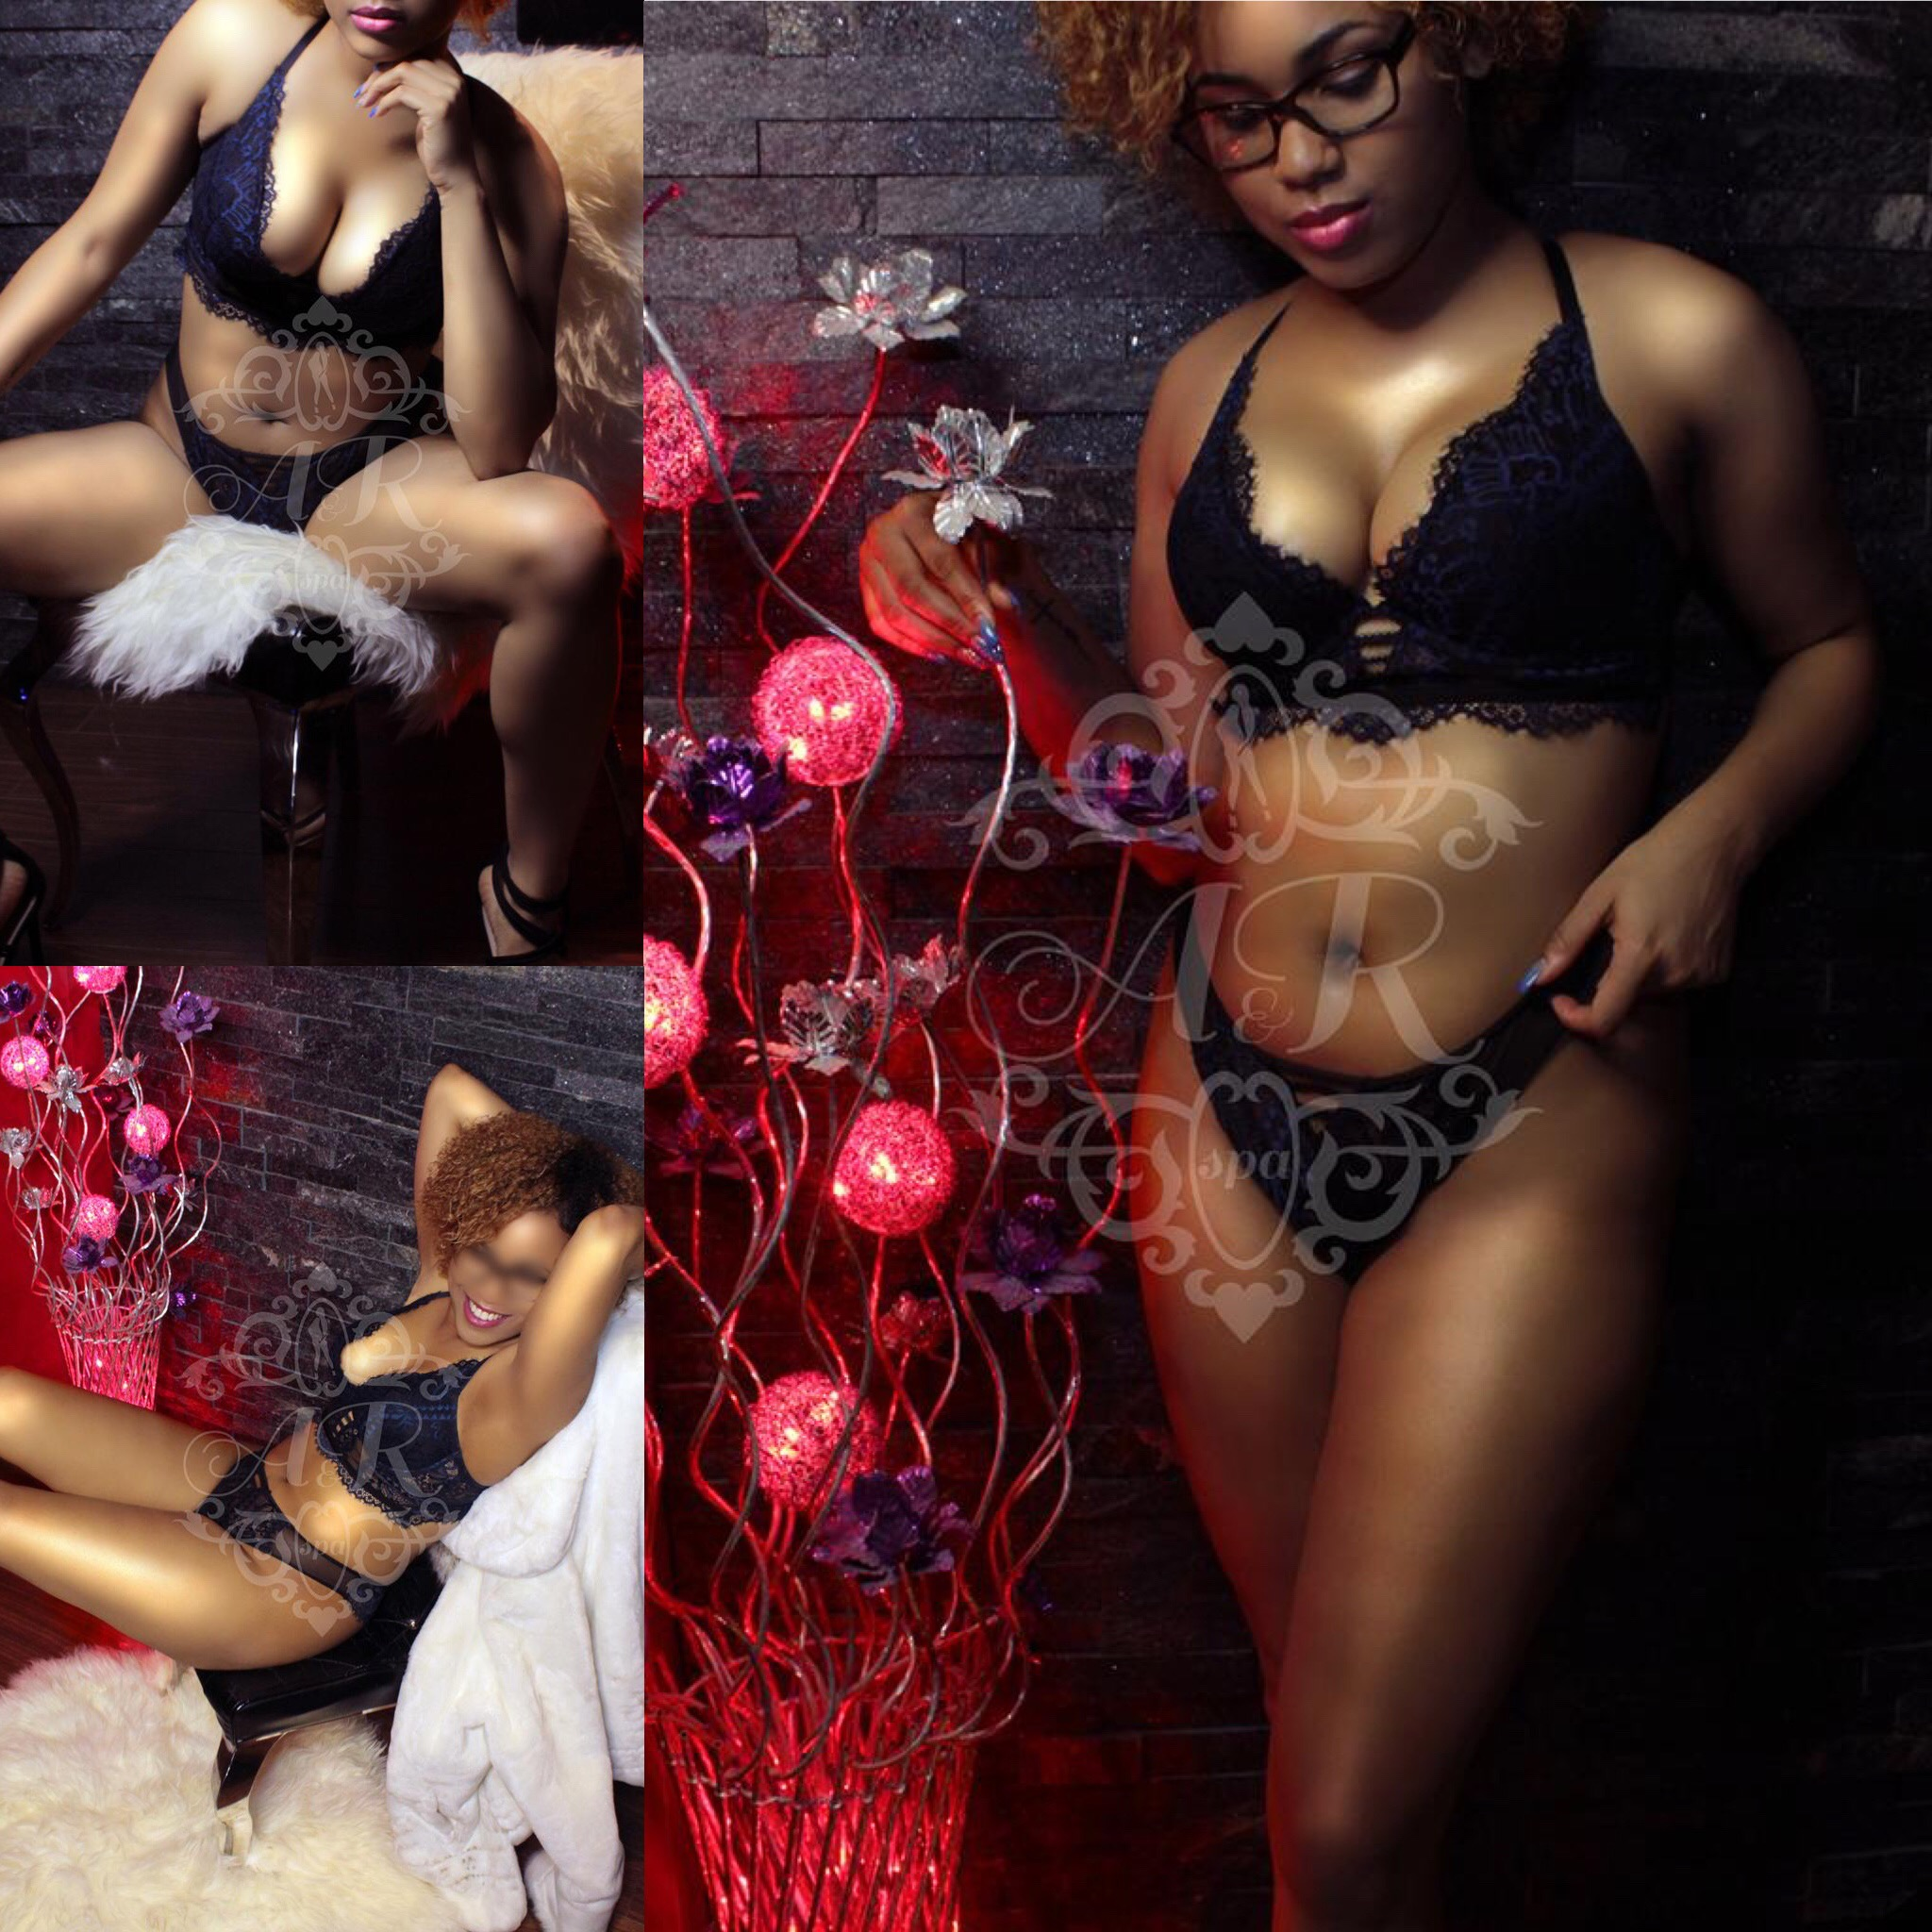 SEDUCTIVE COMPANIONSHIP AT IT'S FINEST**CHOOSE_1 out_20- International-Ladies-Weekly